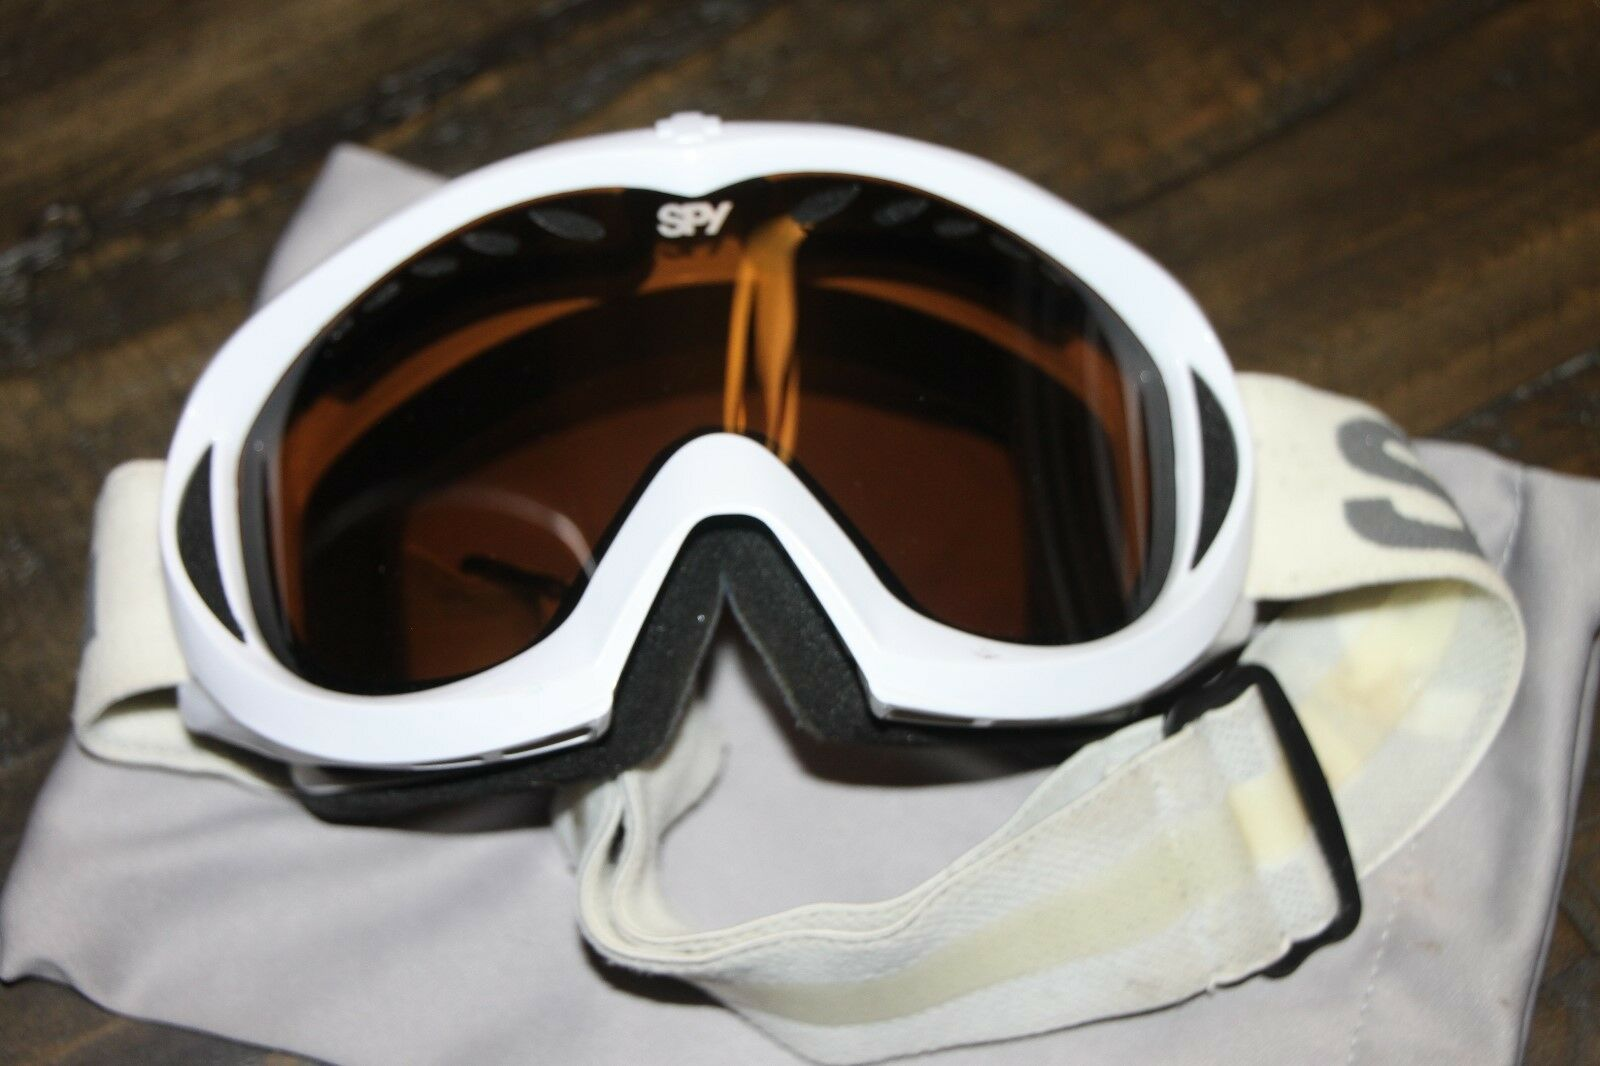 Spy Men's Snowboard Goggles - White   online shopping and fashion store